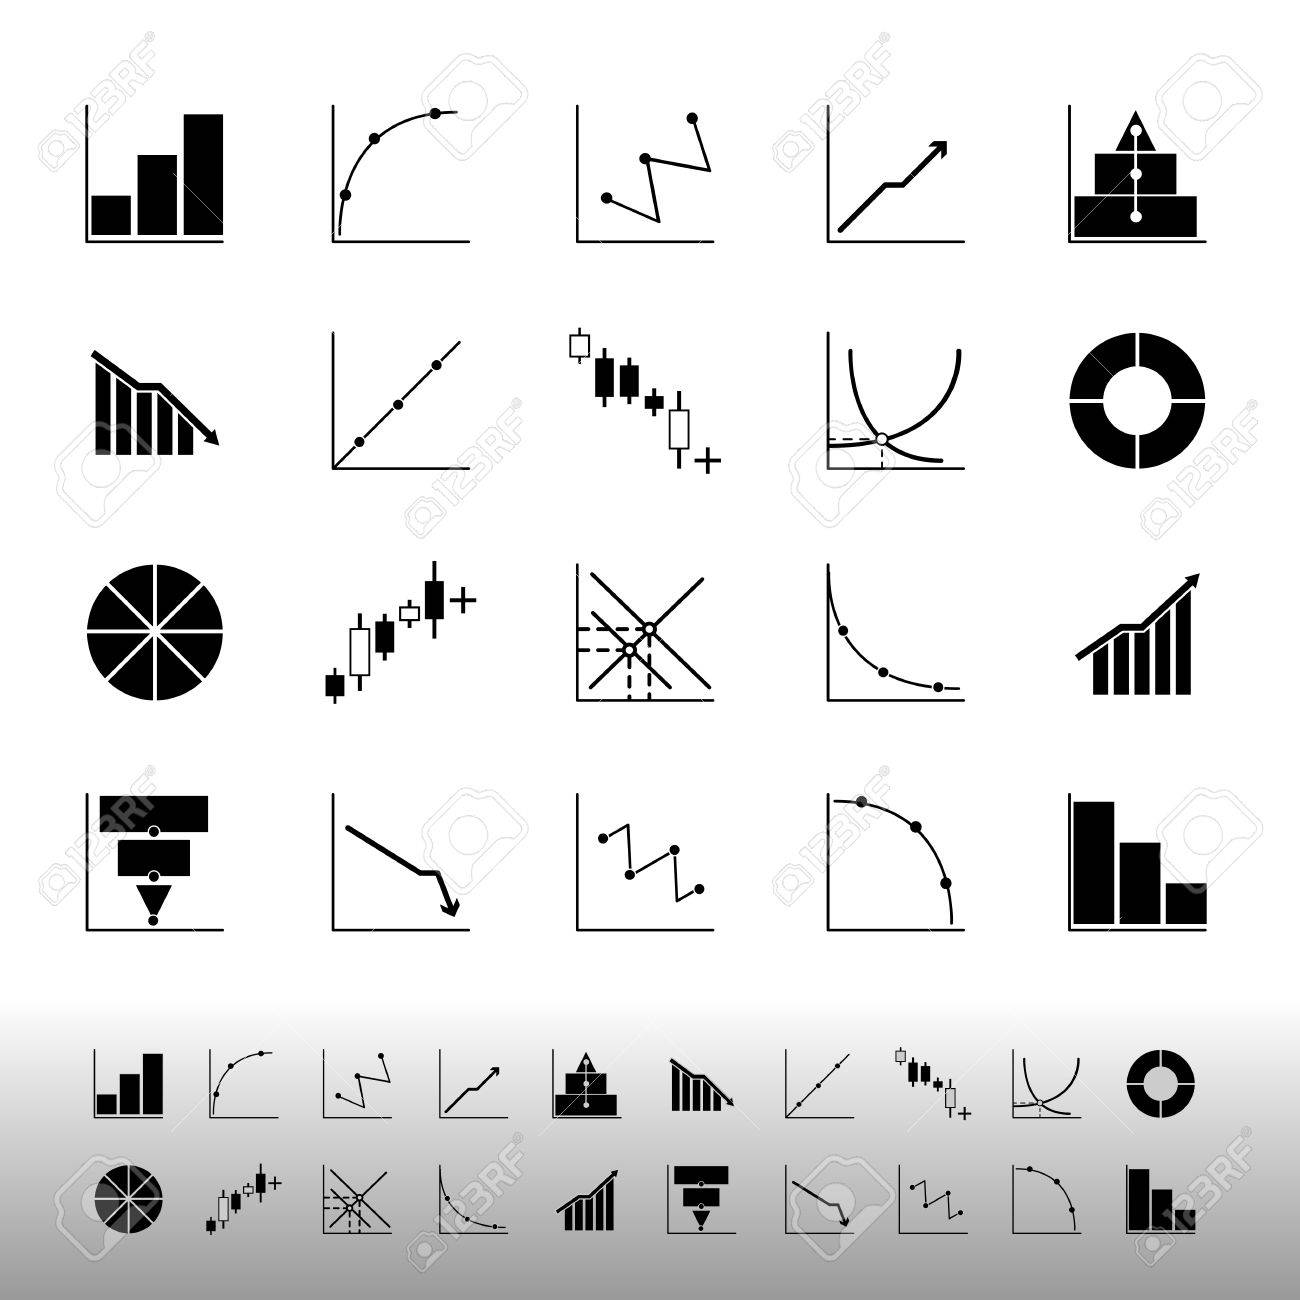 Set of diagram and graph icons on white background, stock vector Standard-Bild - 25127926